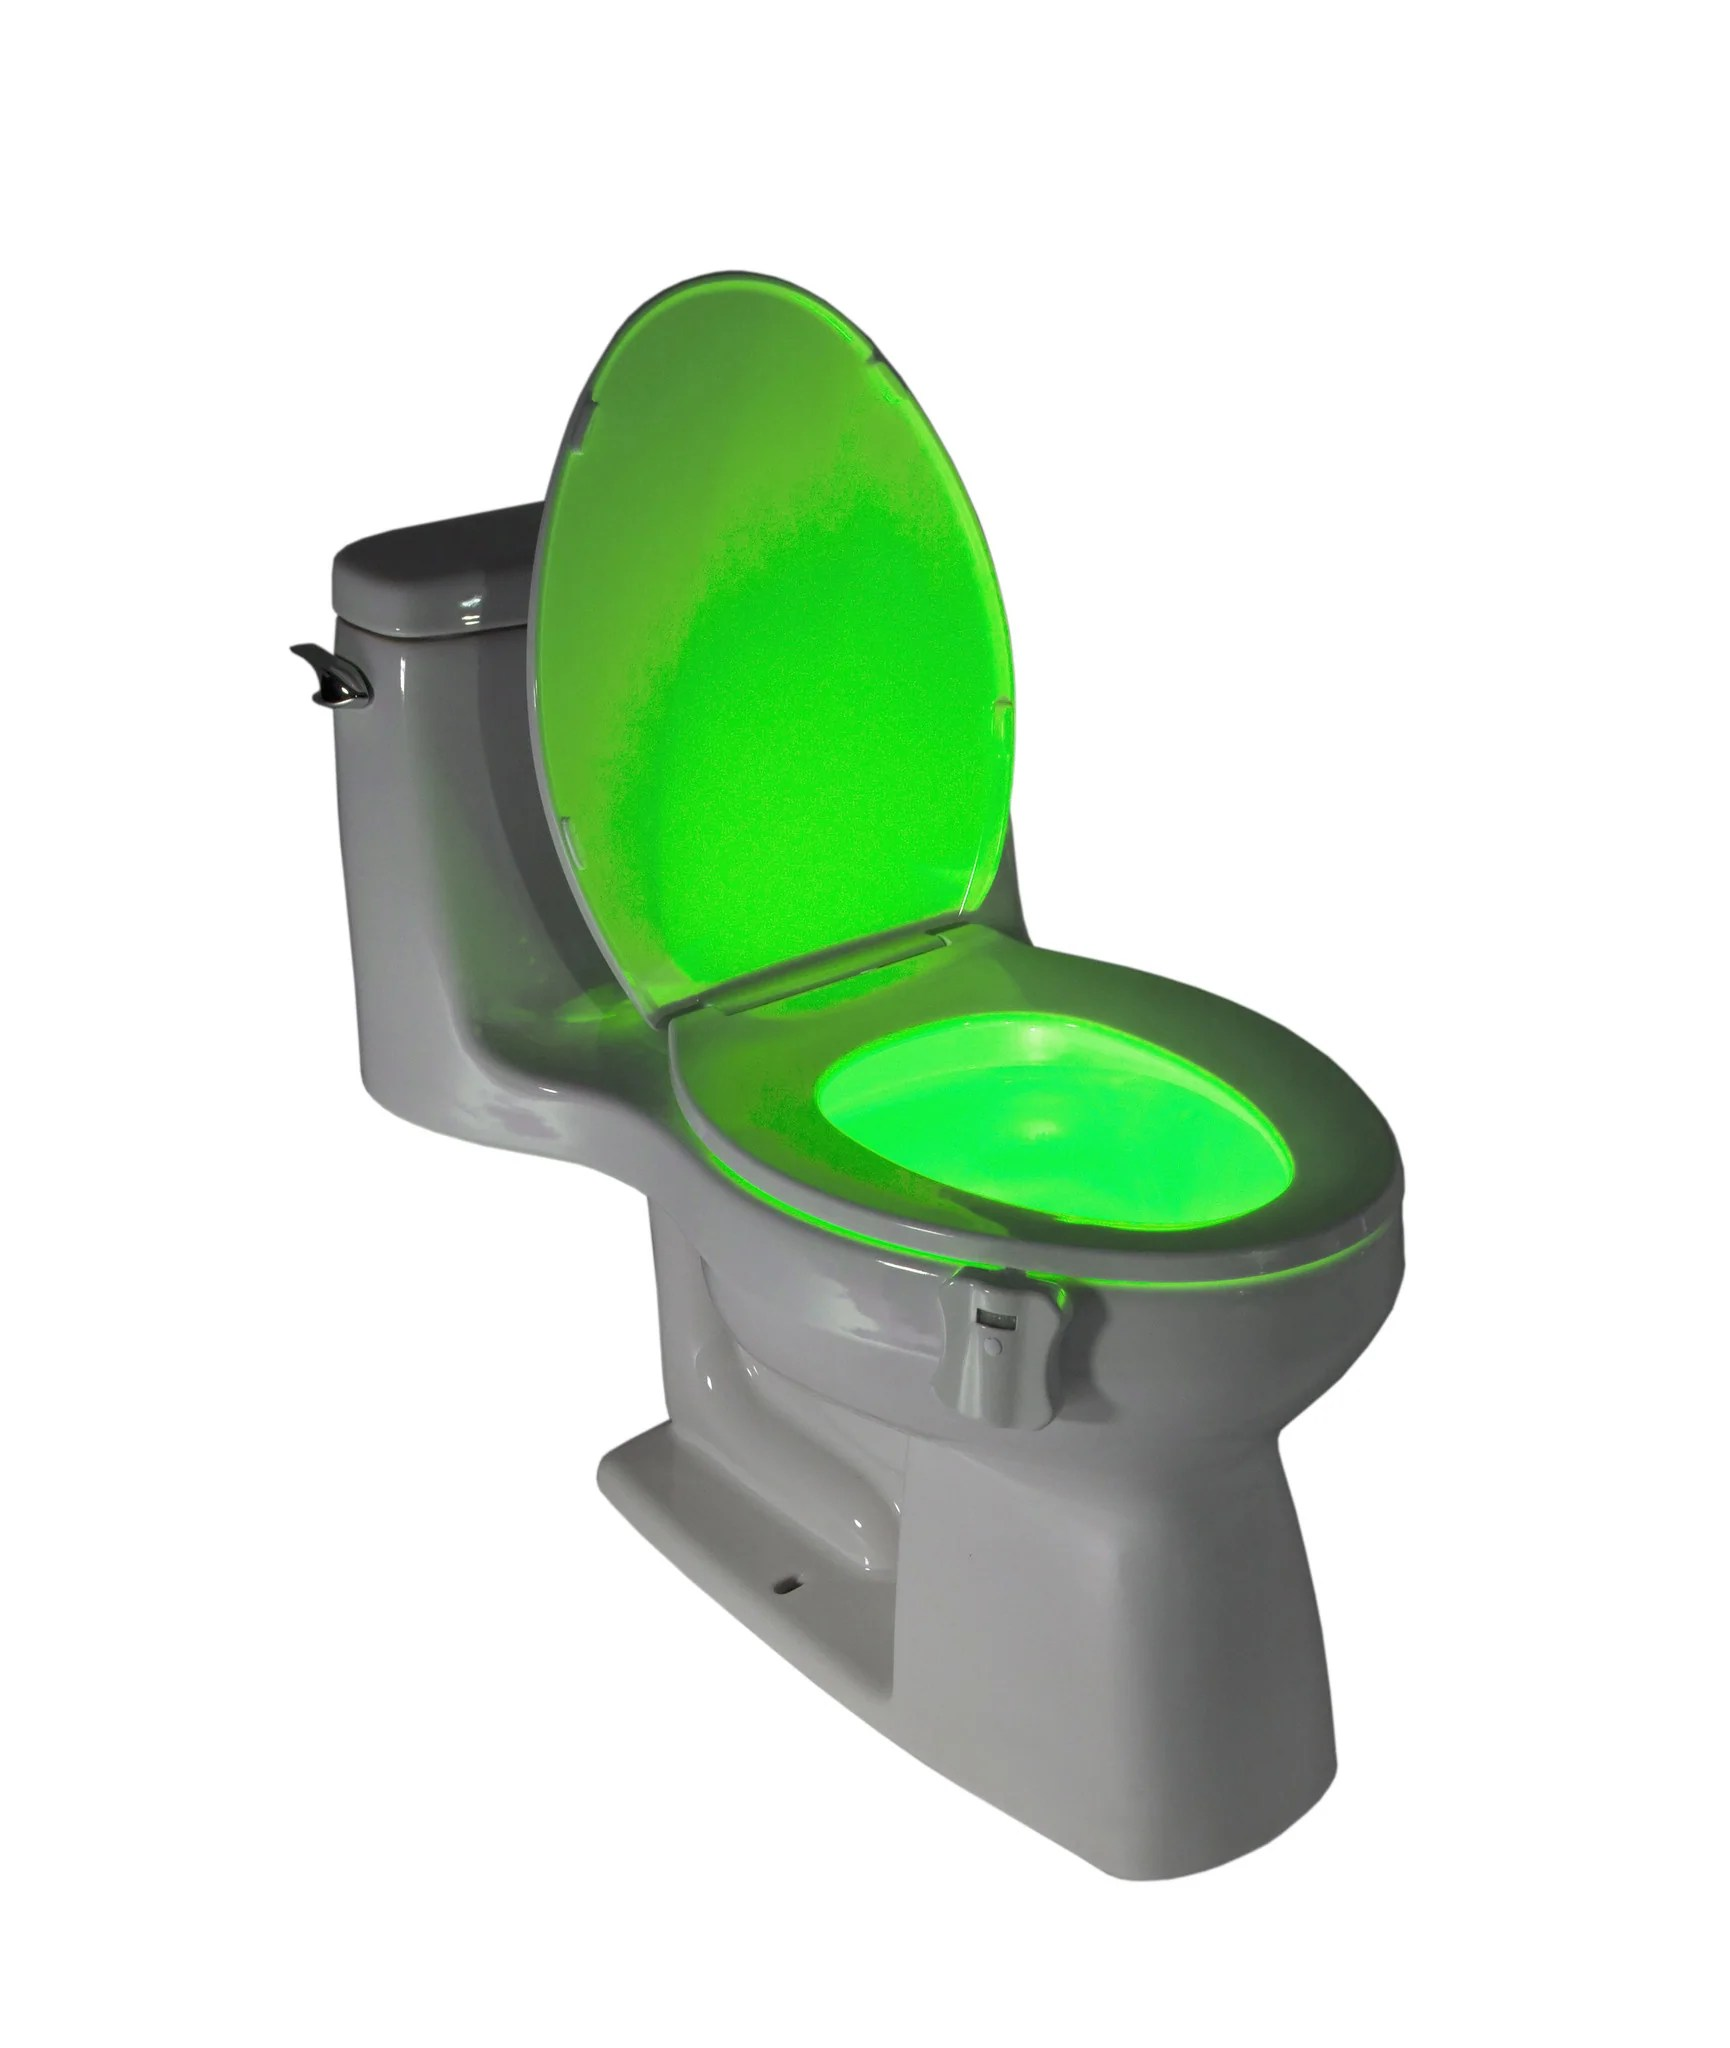 glowbowl motion activated toilet